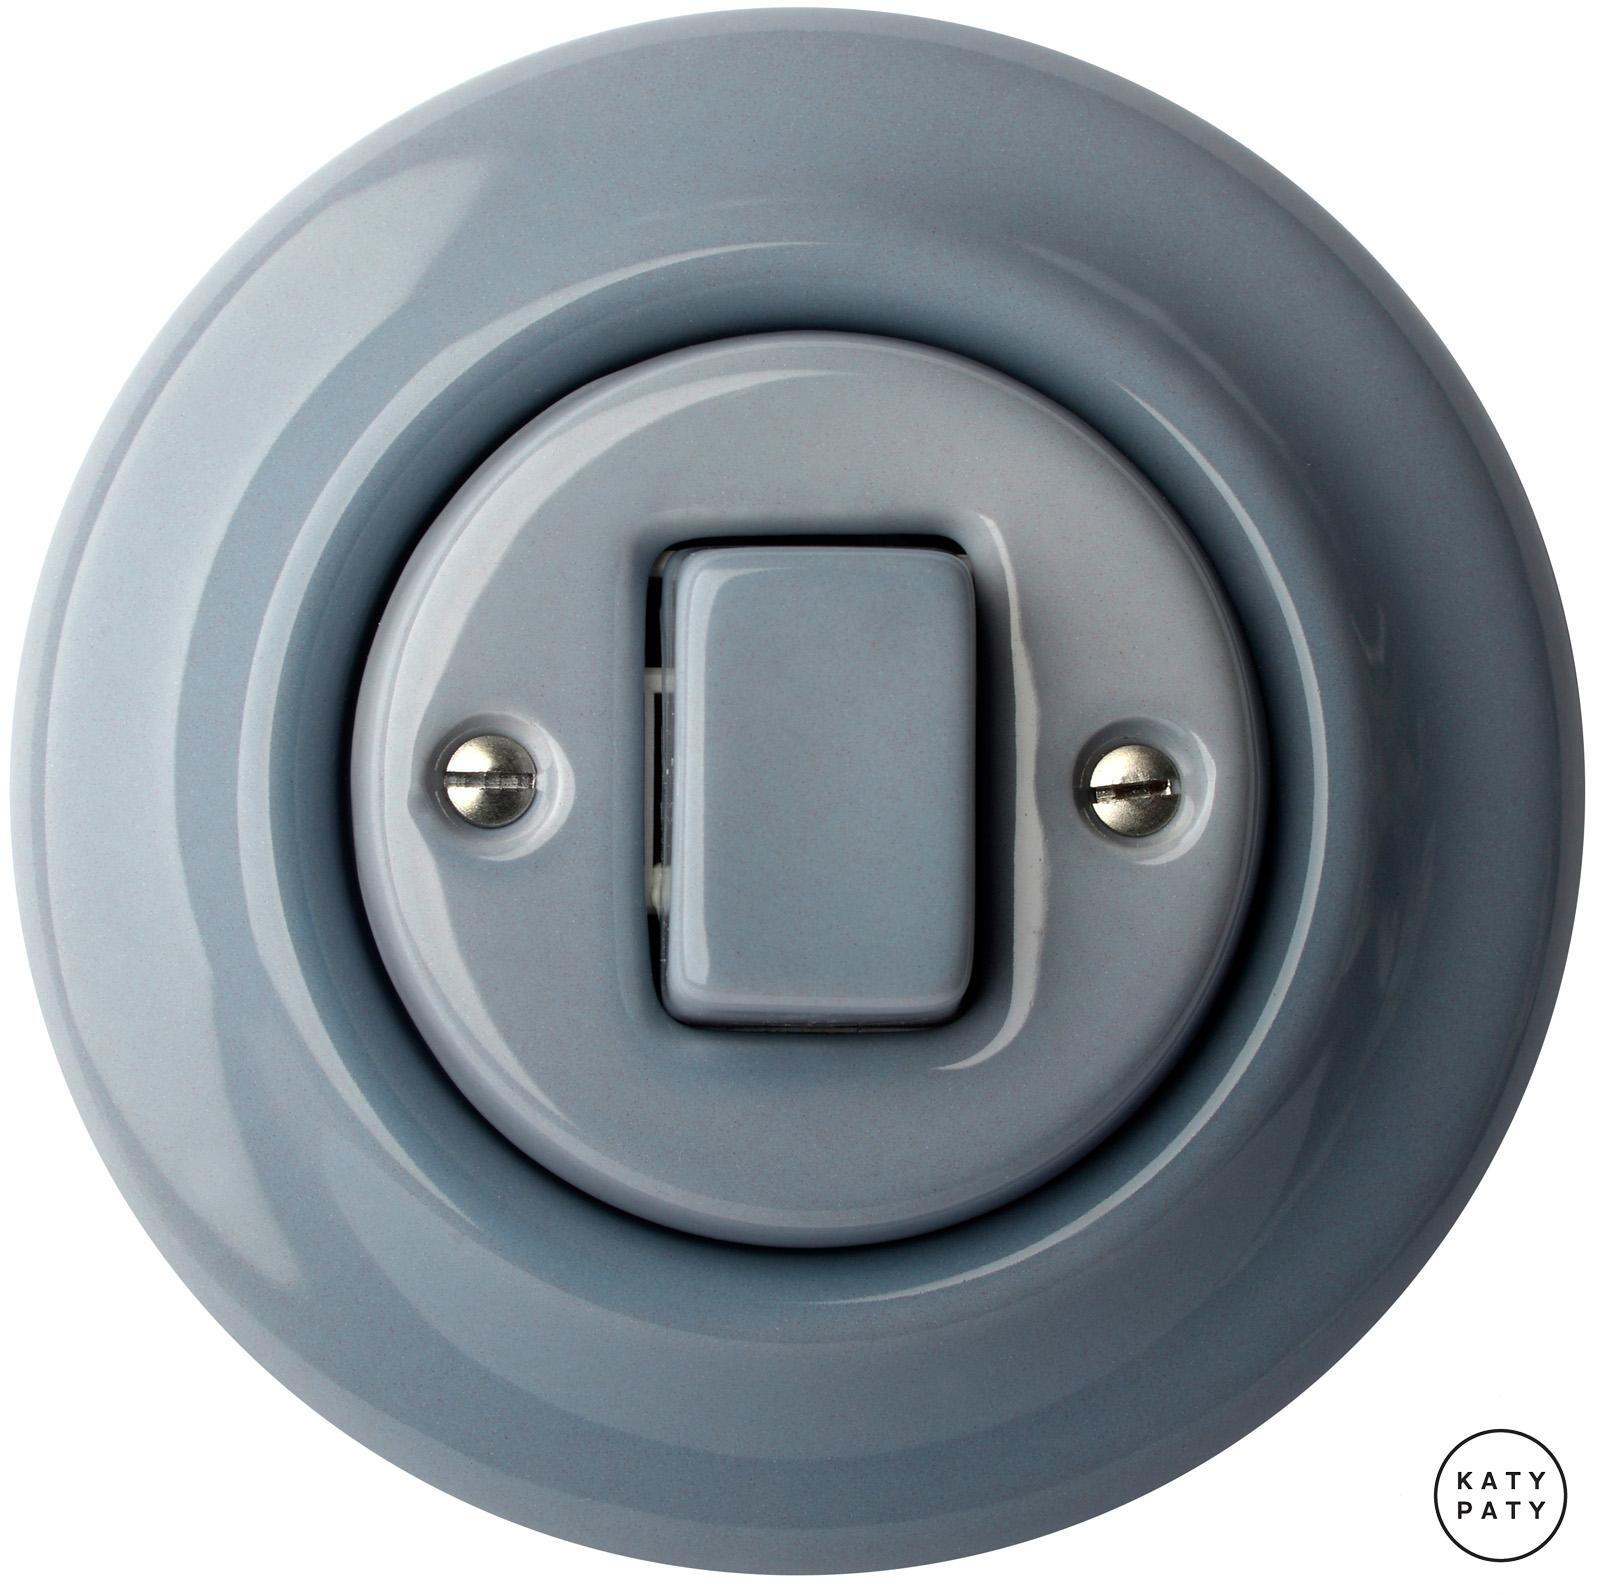 Katy Paty | Porcelain switches - a single key - FAT ()  - COLUMBA